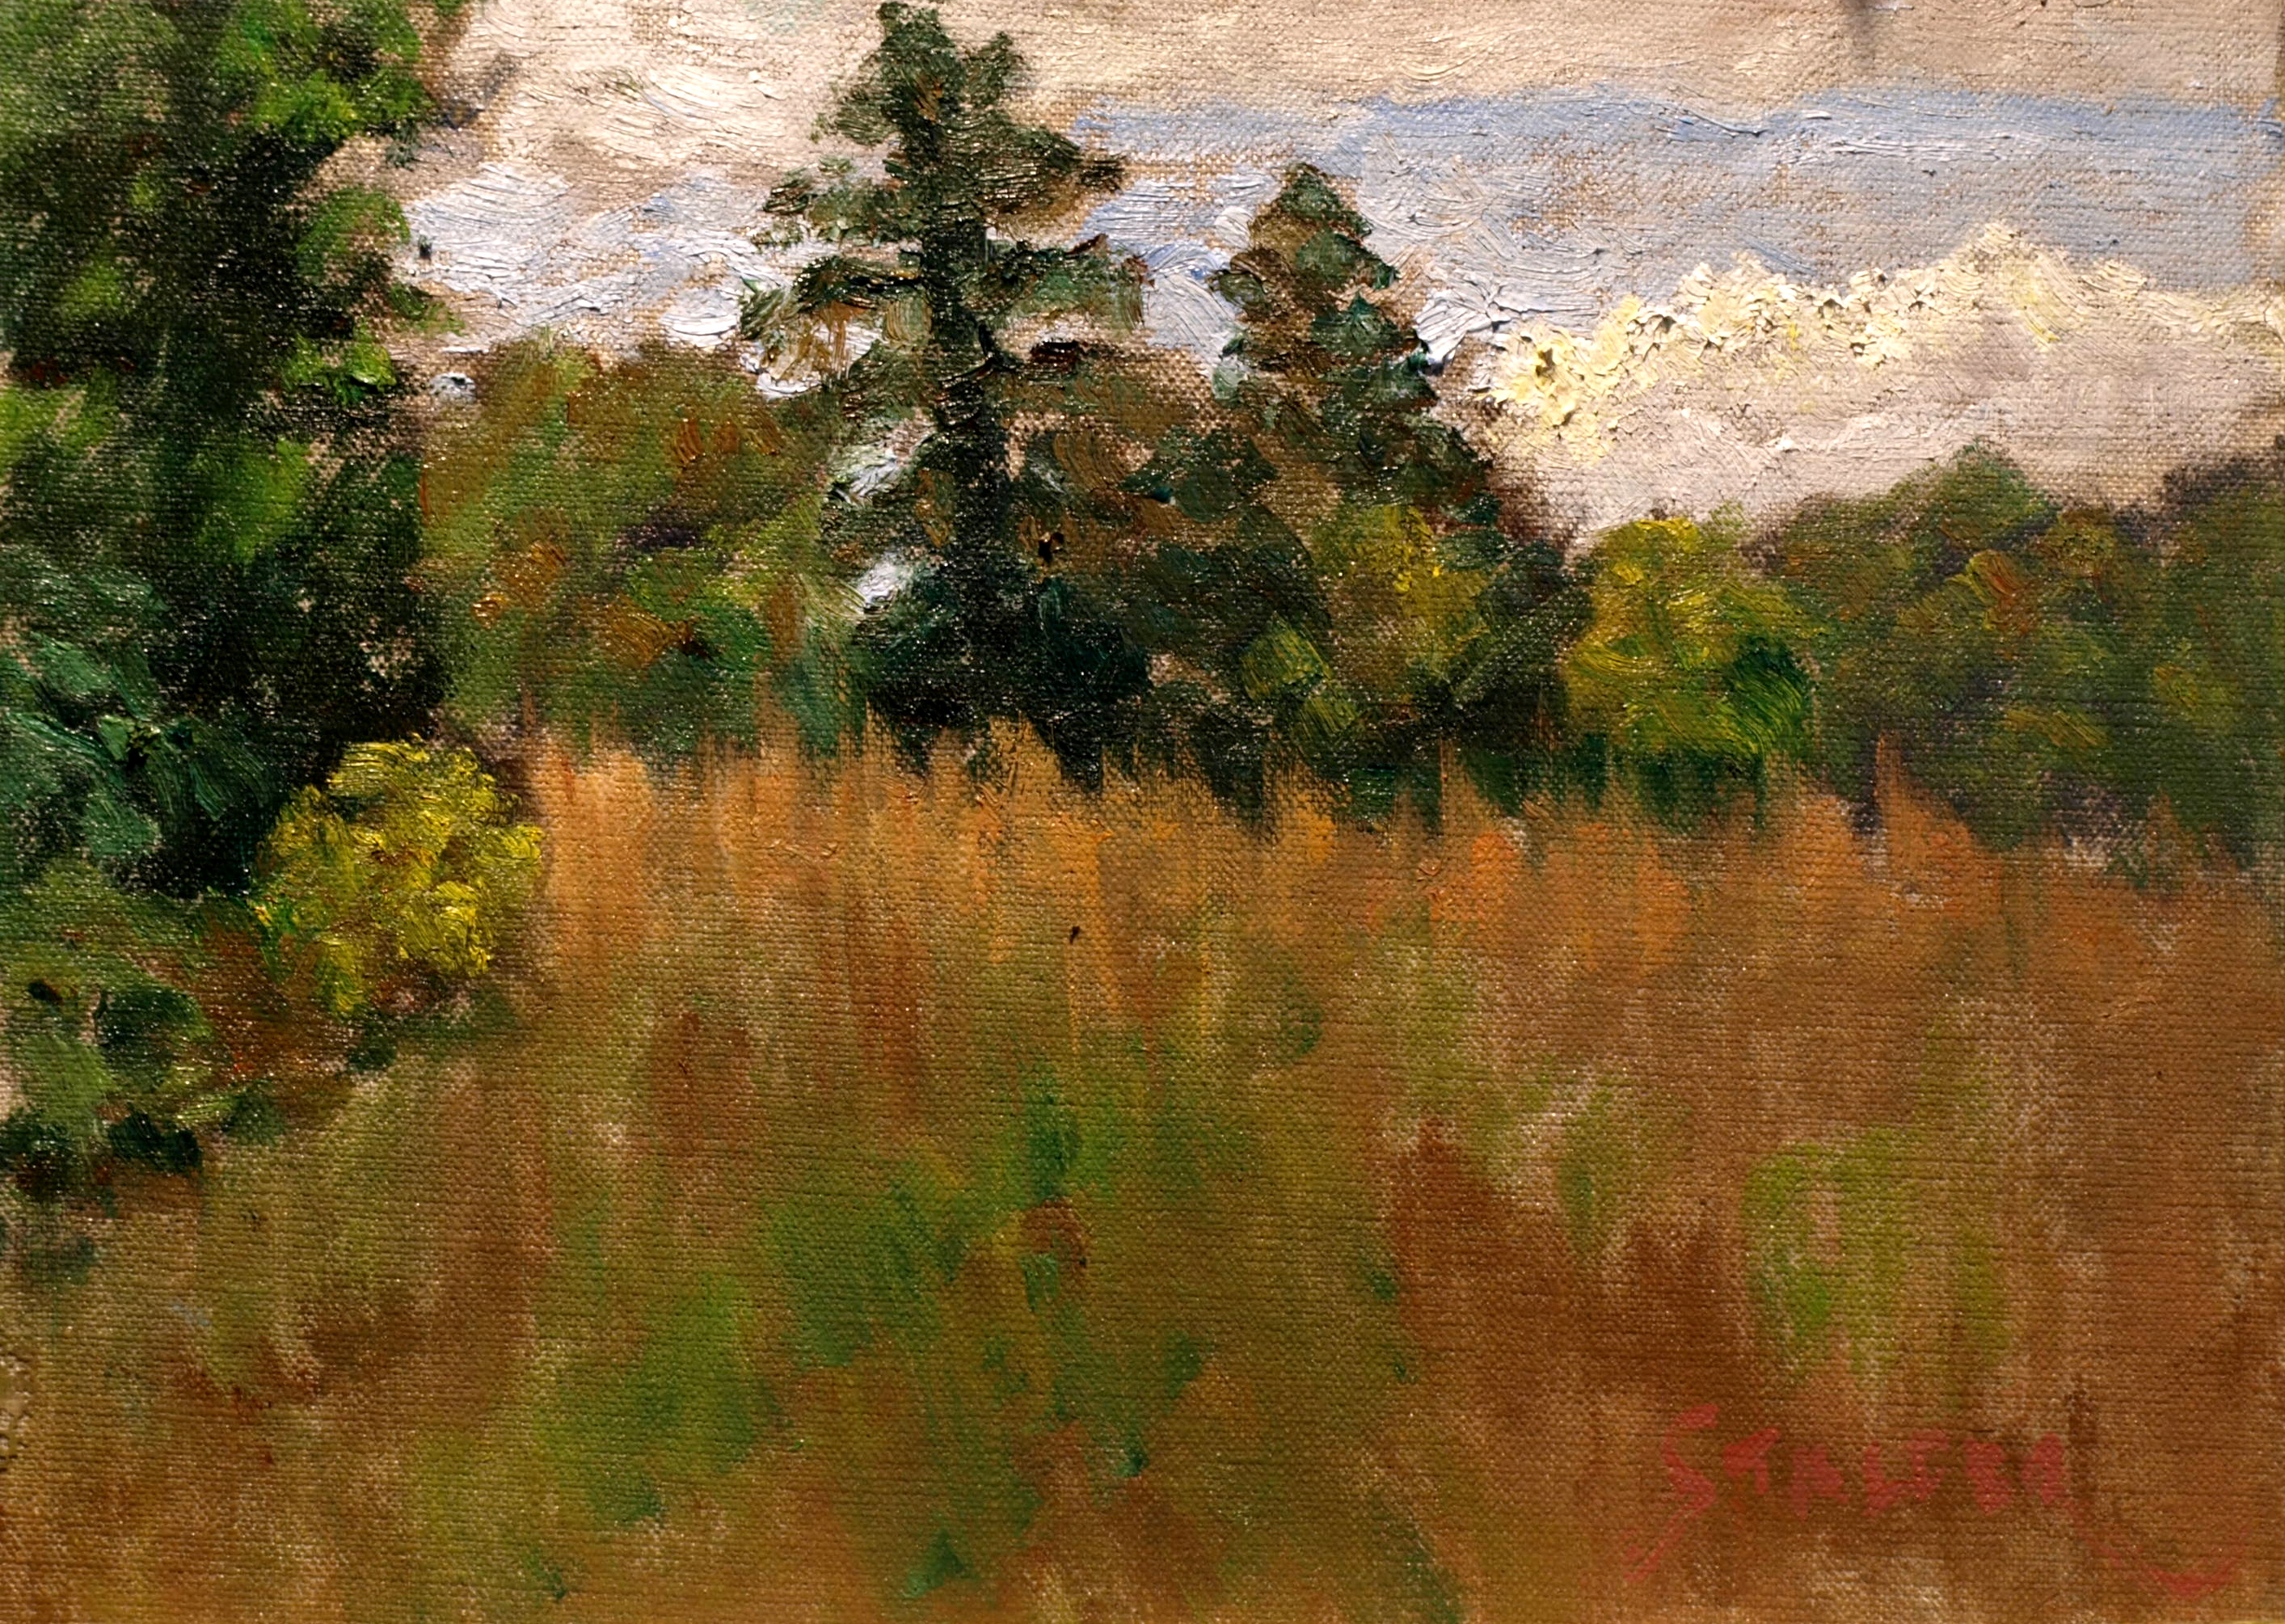 Upland Meadow, Oil on Canvas on Panel, 9 x 12 Inches, by Richard Stalter, $225